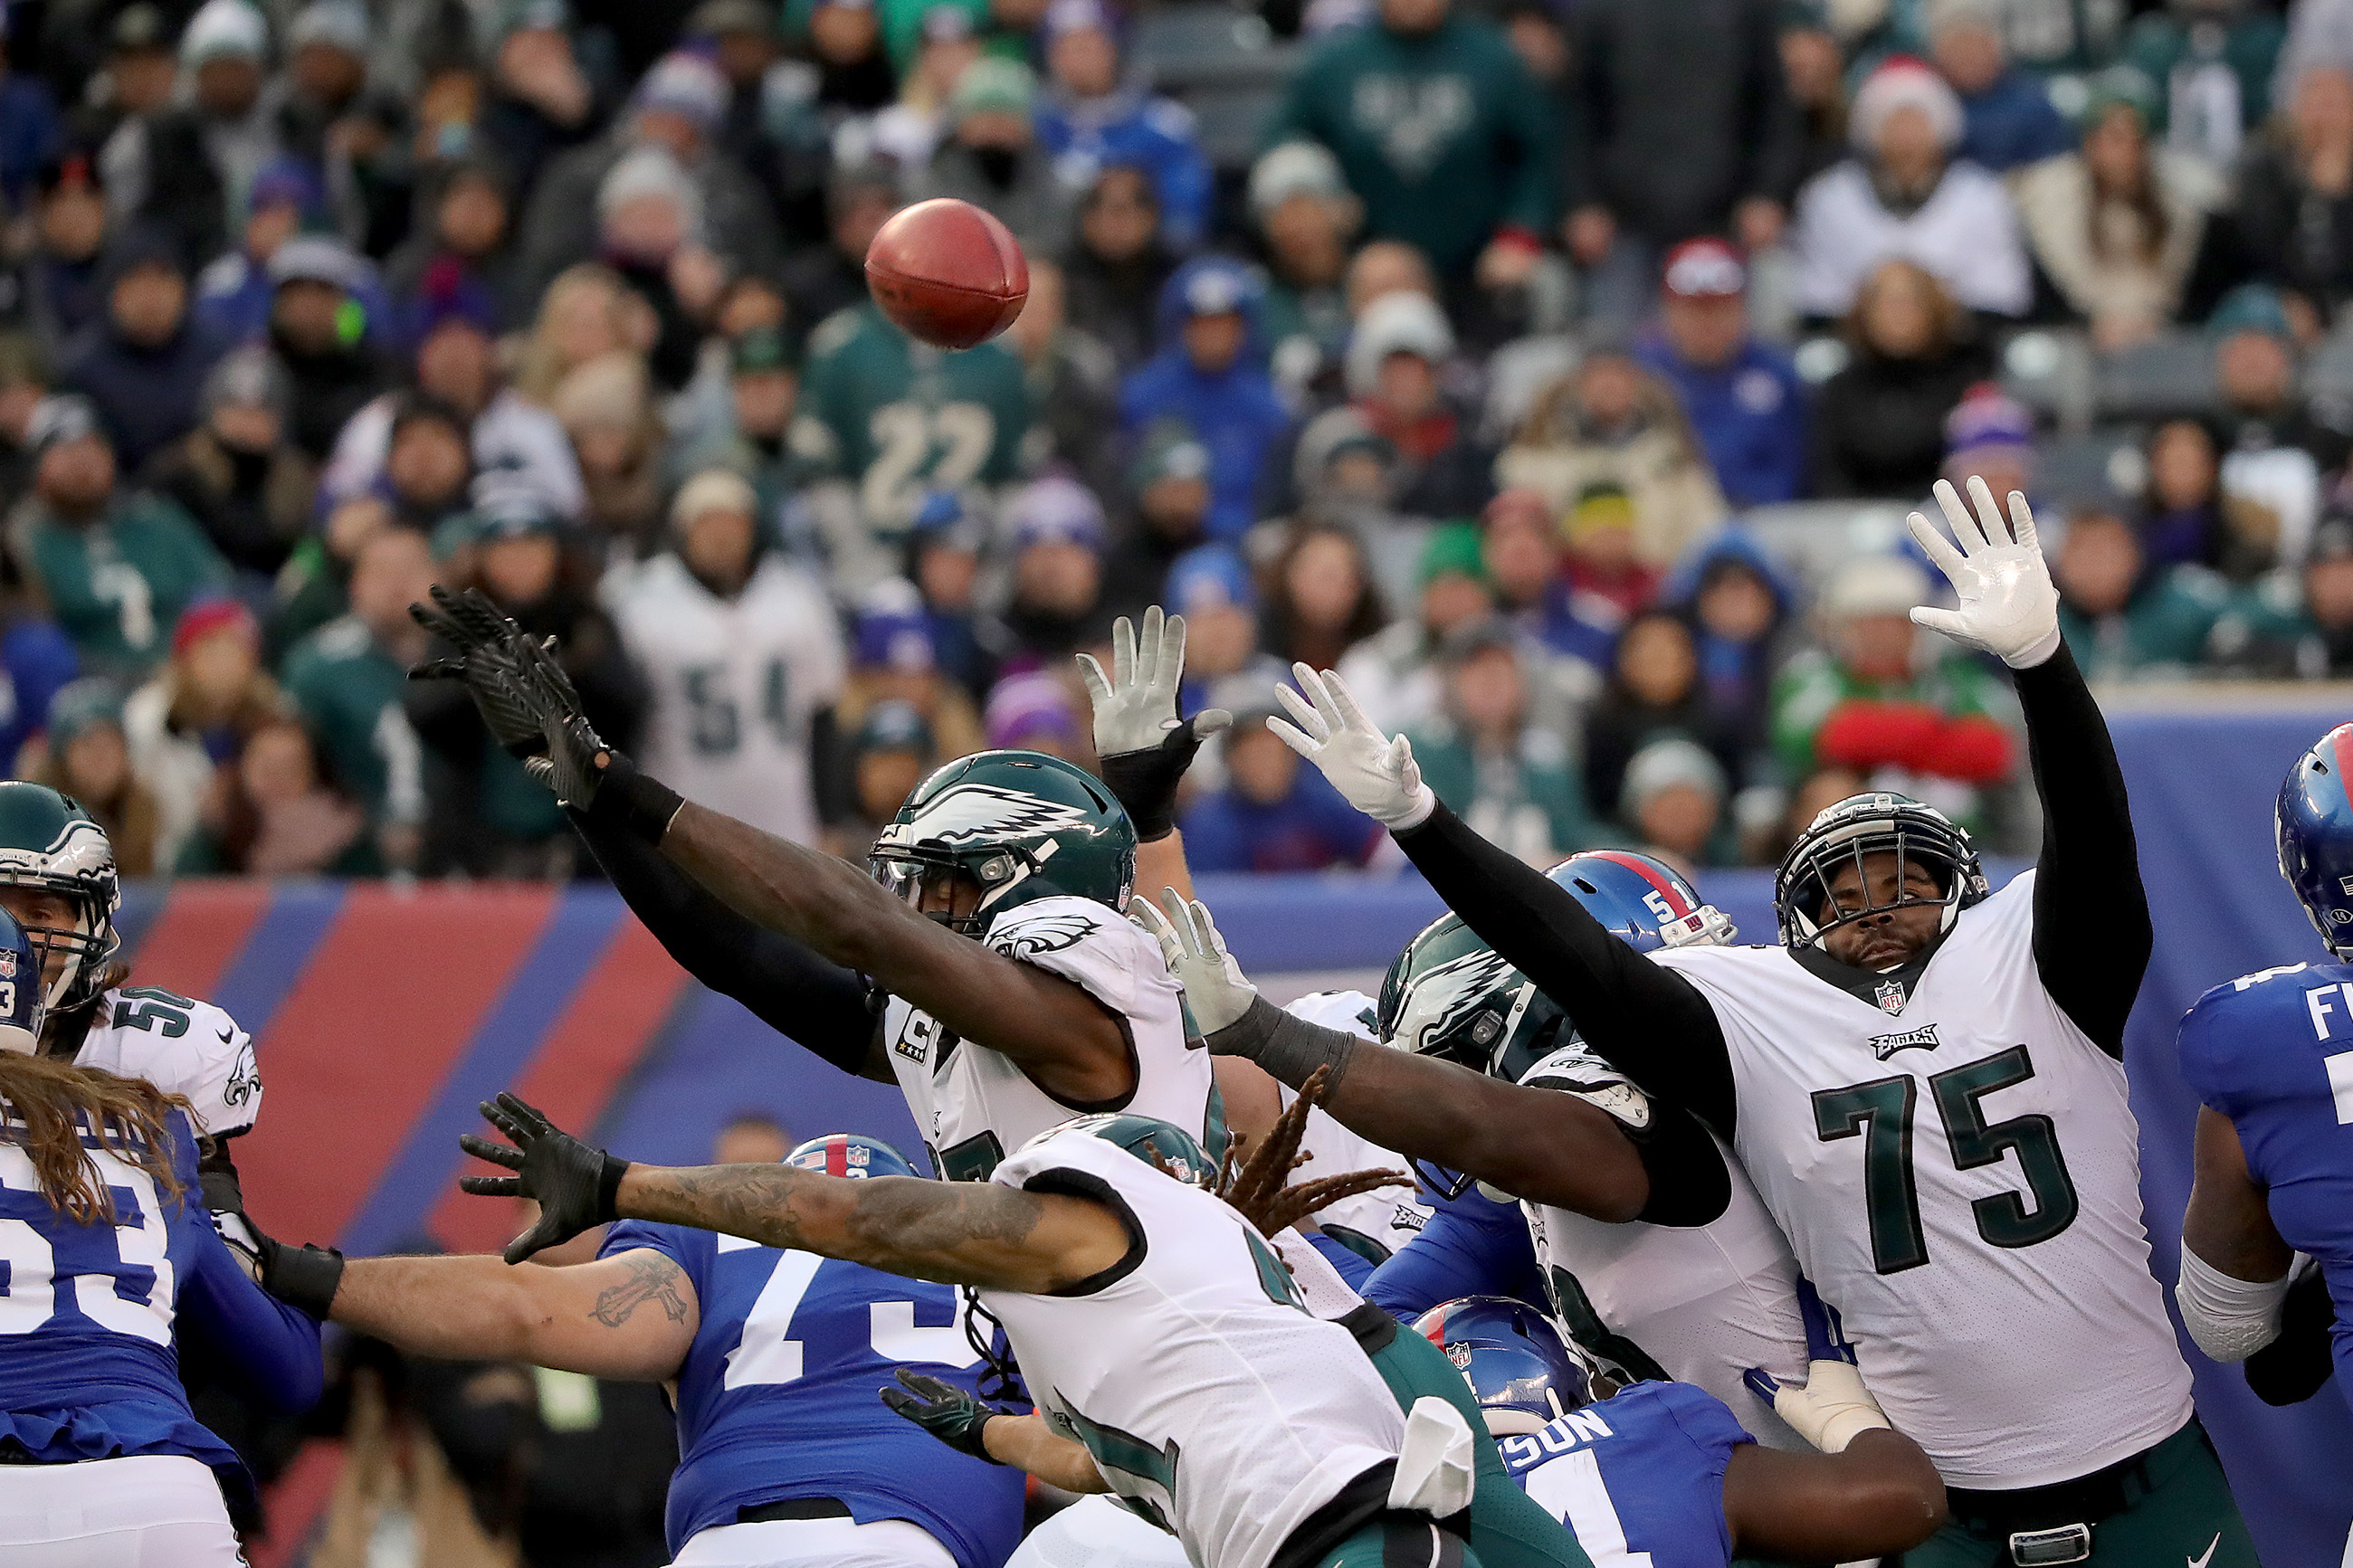 Eagles´ Malcolm Jenkins, center, blocks a Giants´ field goal attempt in the 4th quarter. Philadelphia Eagles win 34-29 over the New York Giants in East Rutherford, New Jersey on December 17, 2017. DAVID MAIALETTI / Staff Photographer